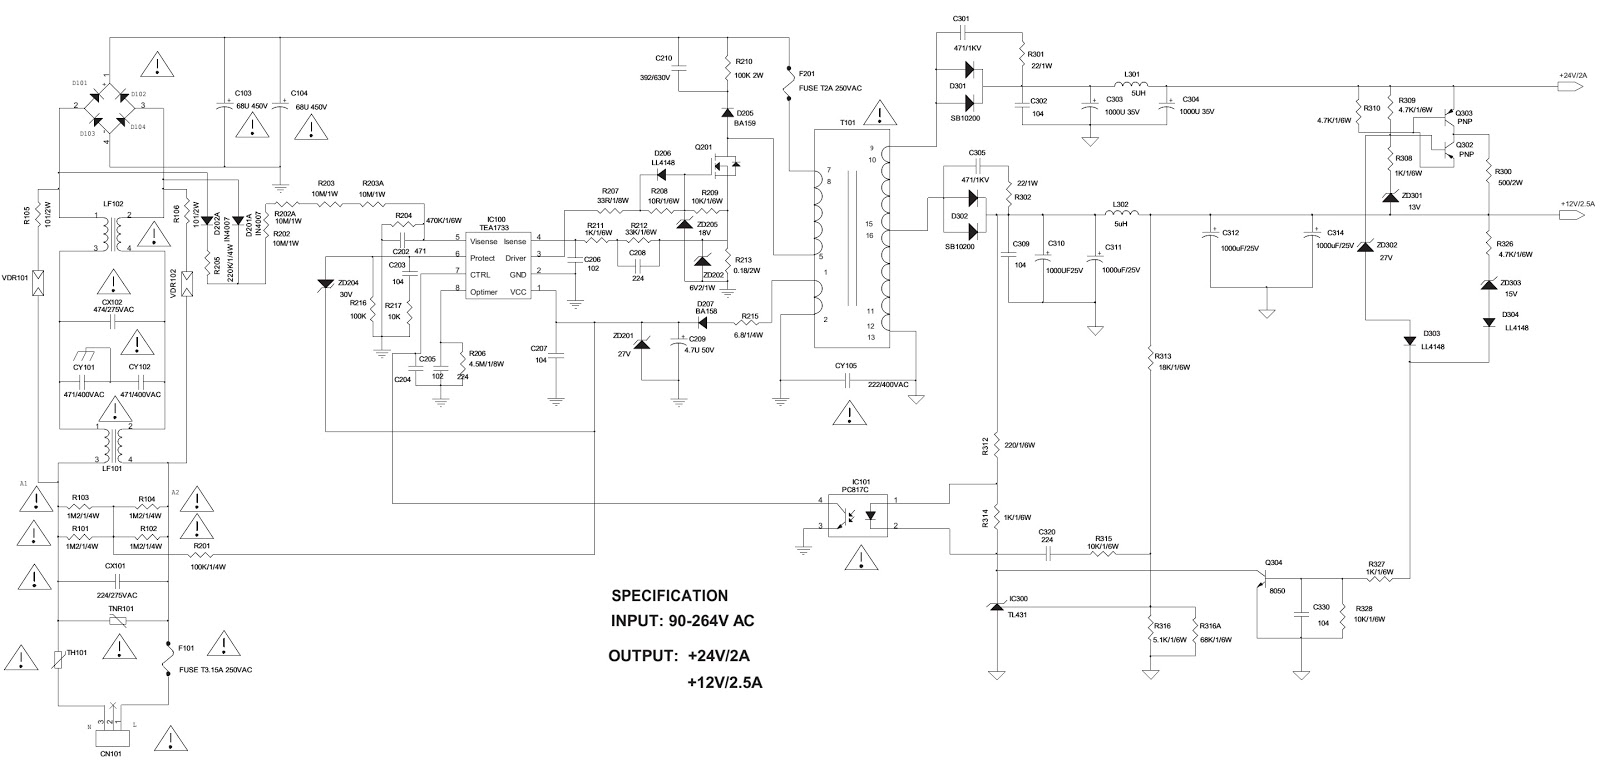 FIG 1 toshiba le3273 toshiba le3973 led lcd tv smps circuit diagram toshiba motor wiring diagram at bayanpartner.co